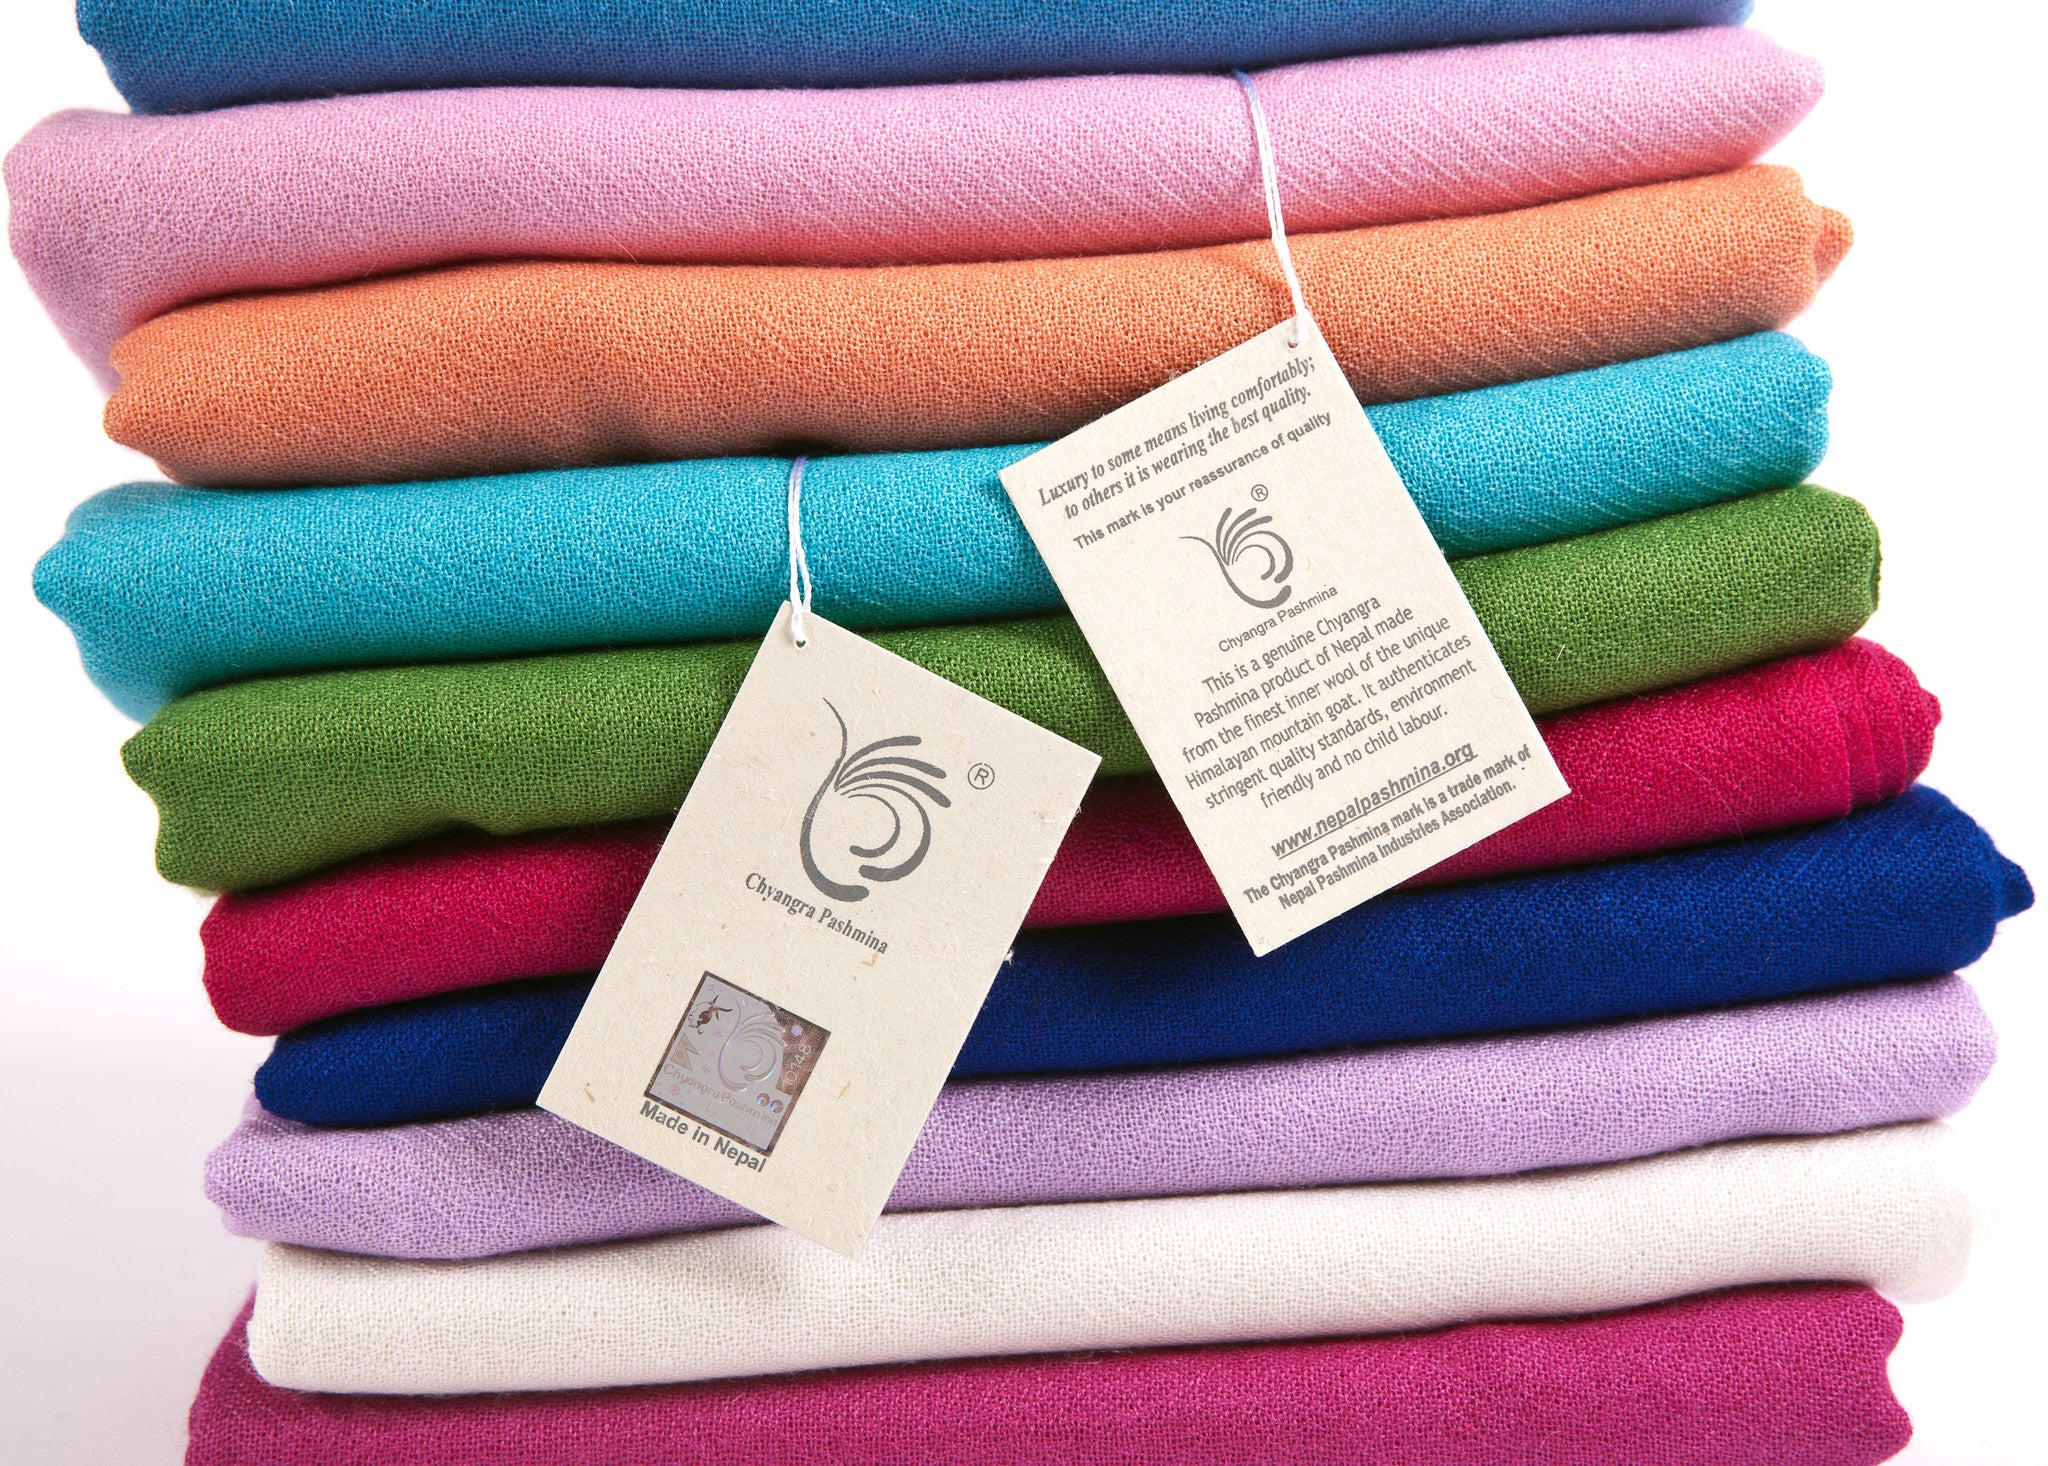 Why is real cashmere so expensive?